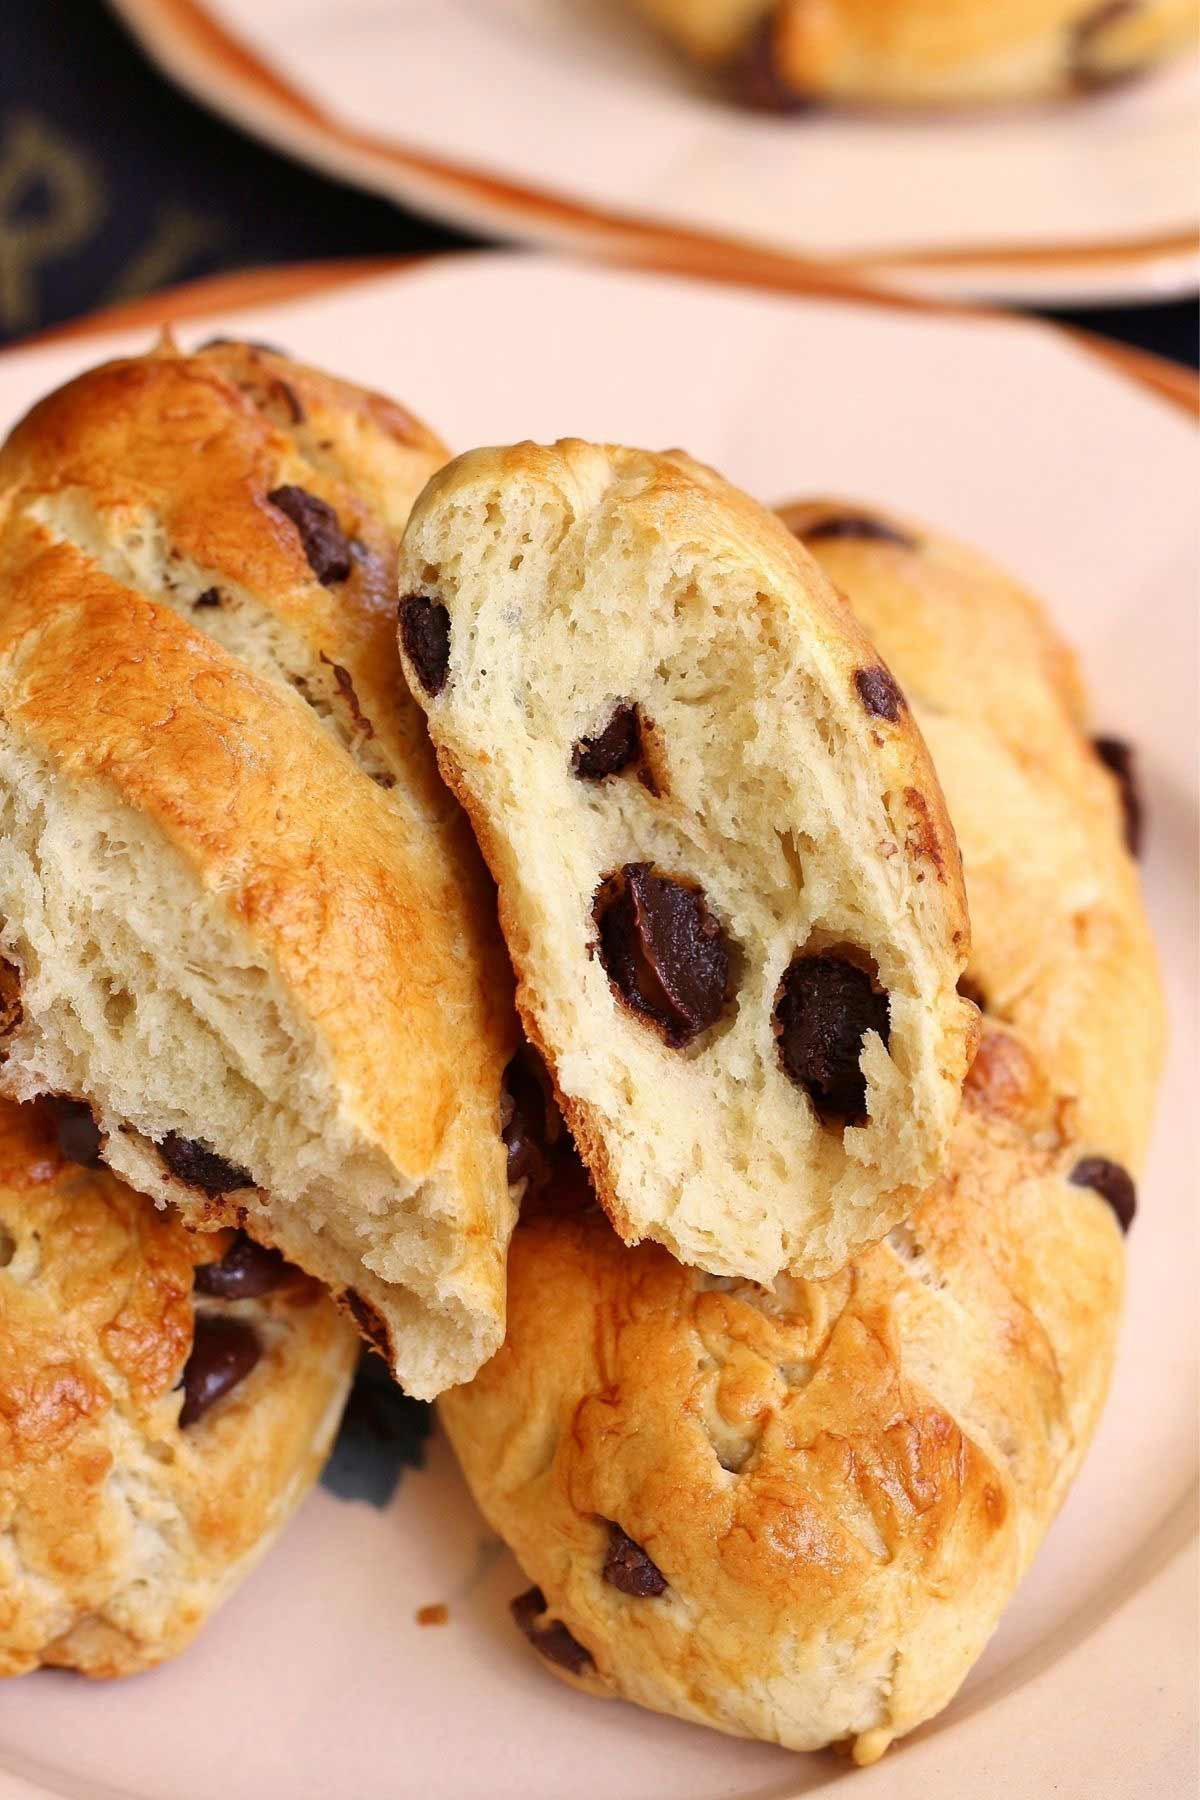 Closeup of a cross-section of a chocolate chip Vienna bread with molten chocolate chips.